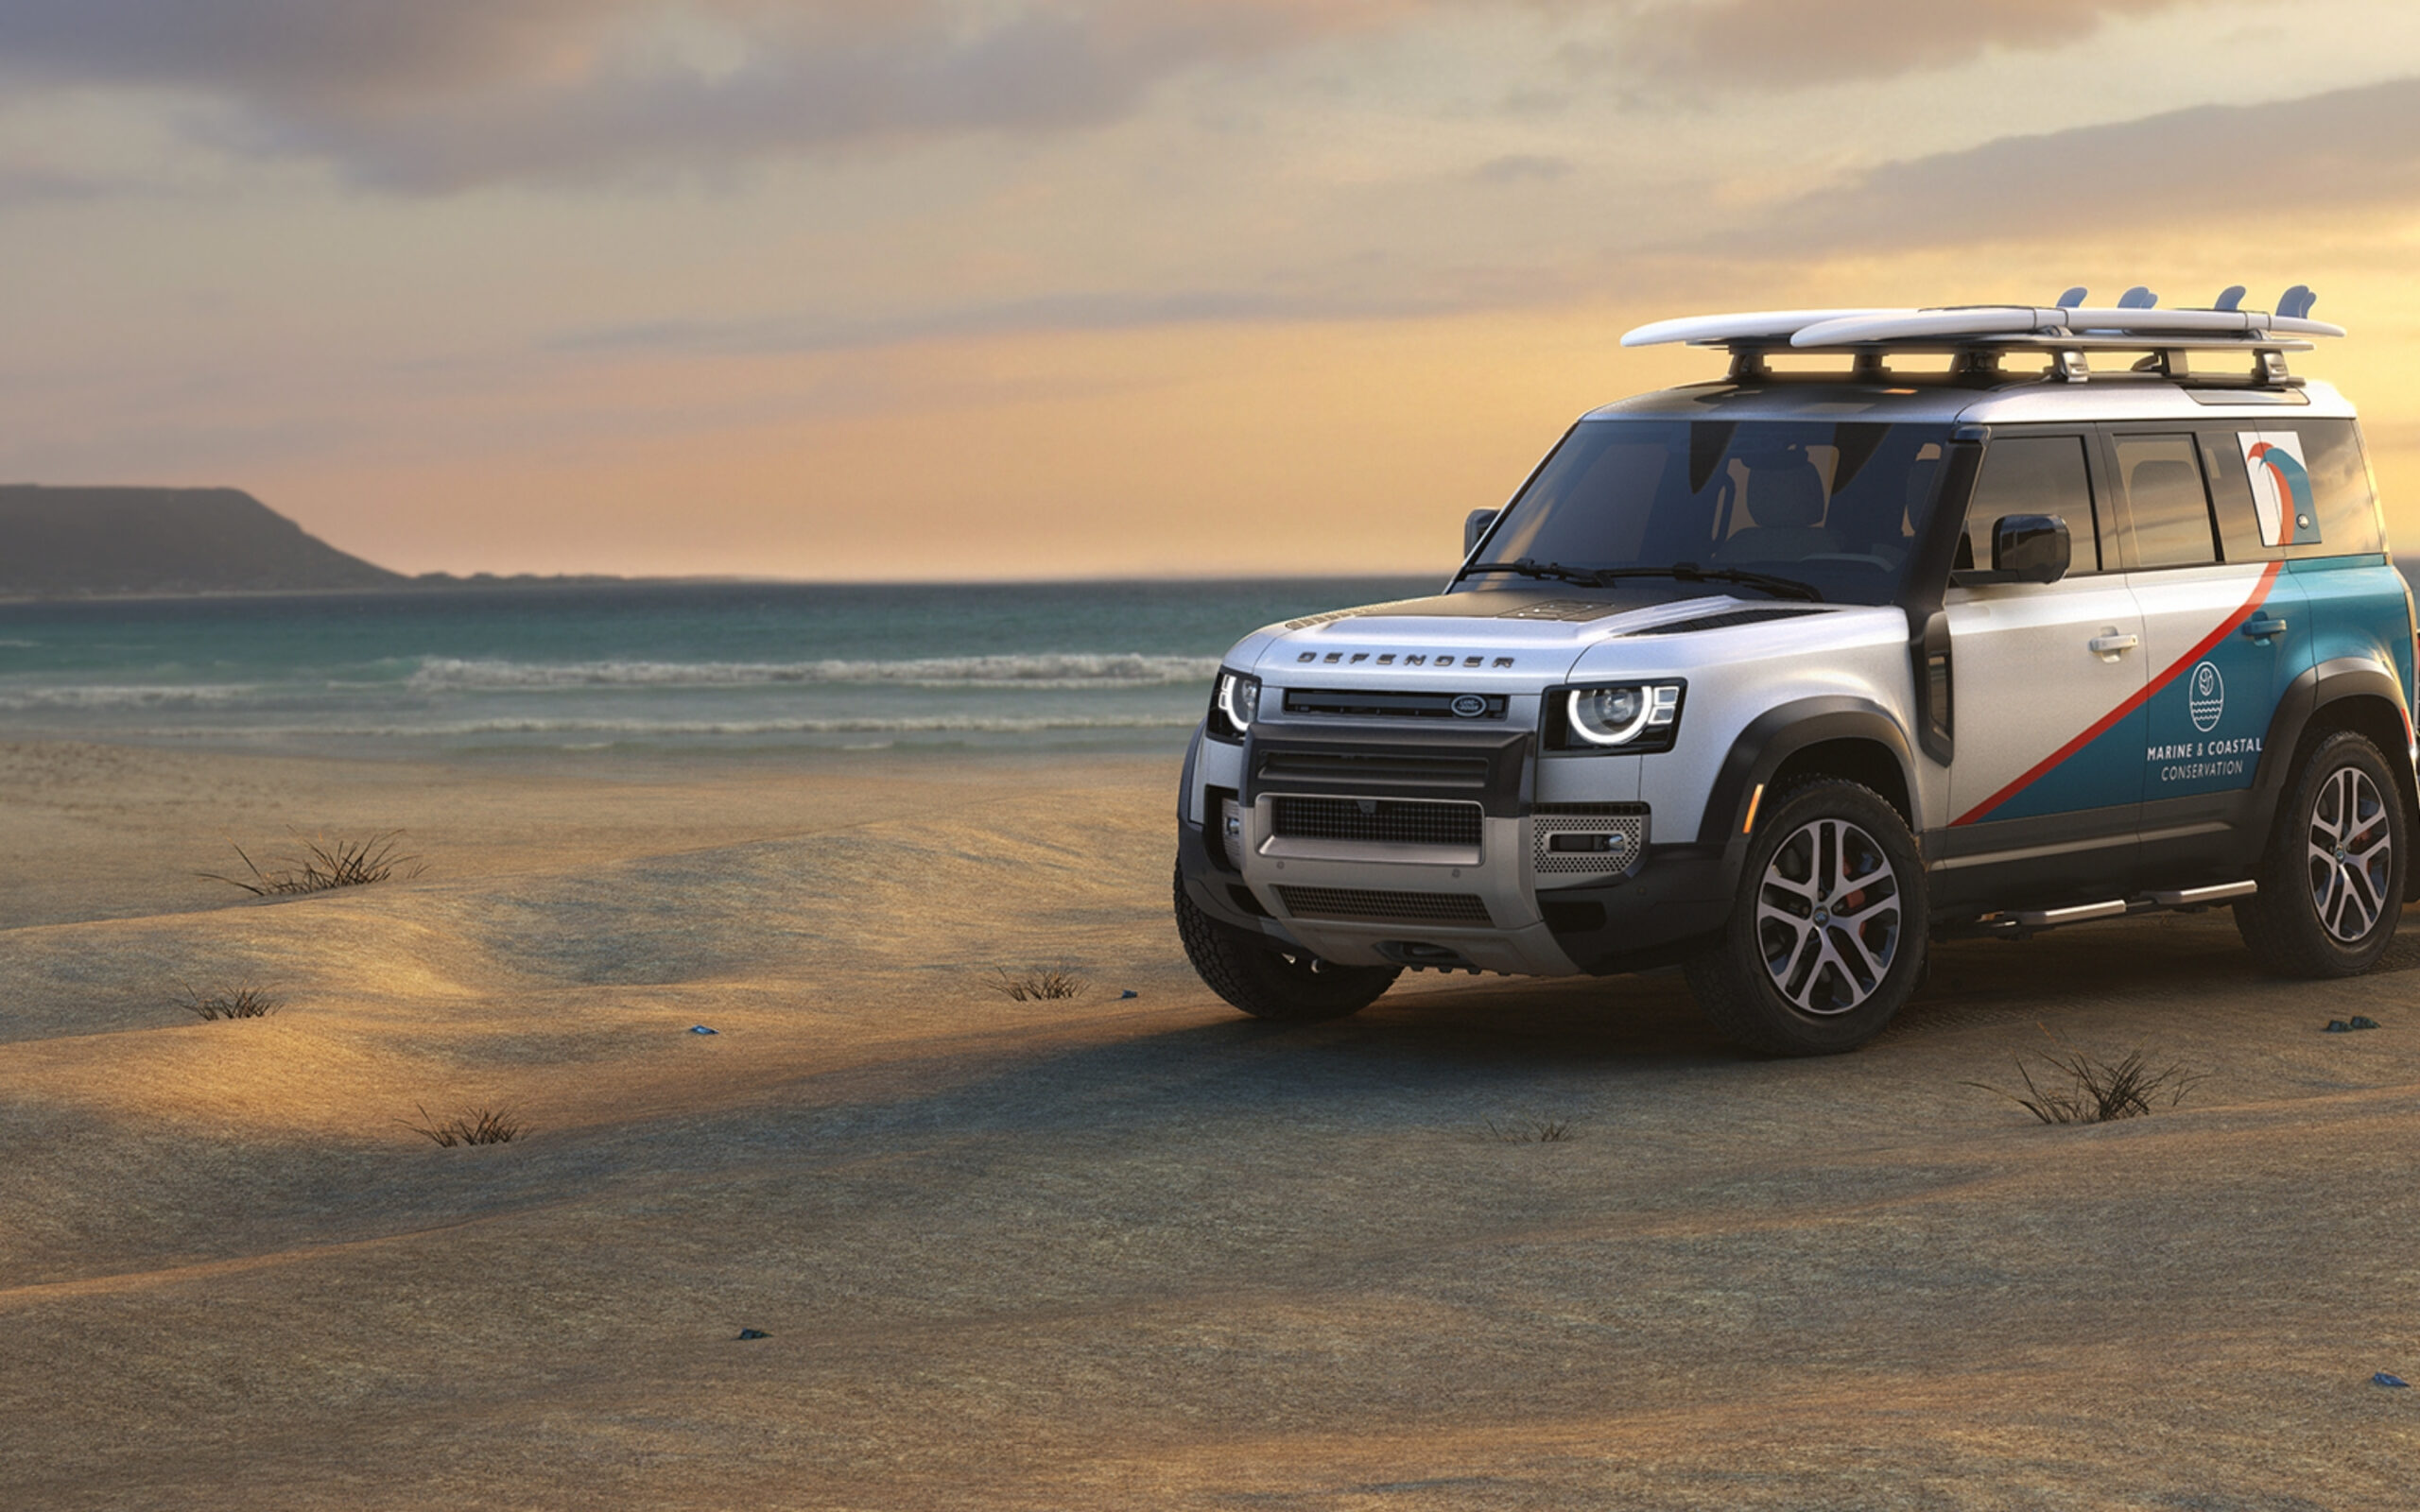 Marine Mammal Non-Profit in Running to Win Land Rover Rescue Vehicle